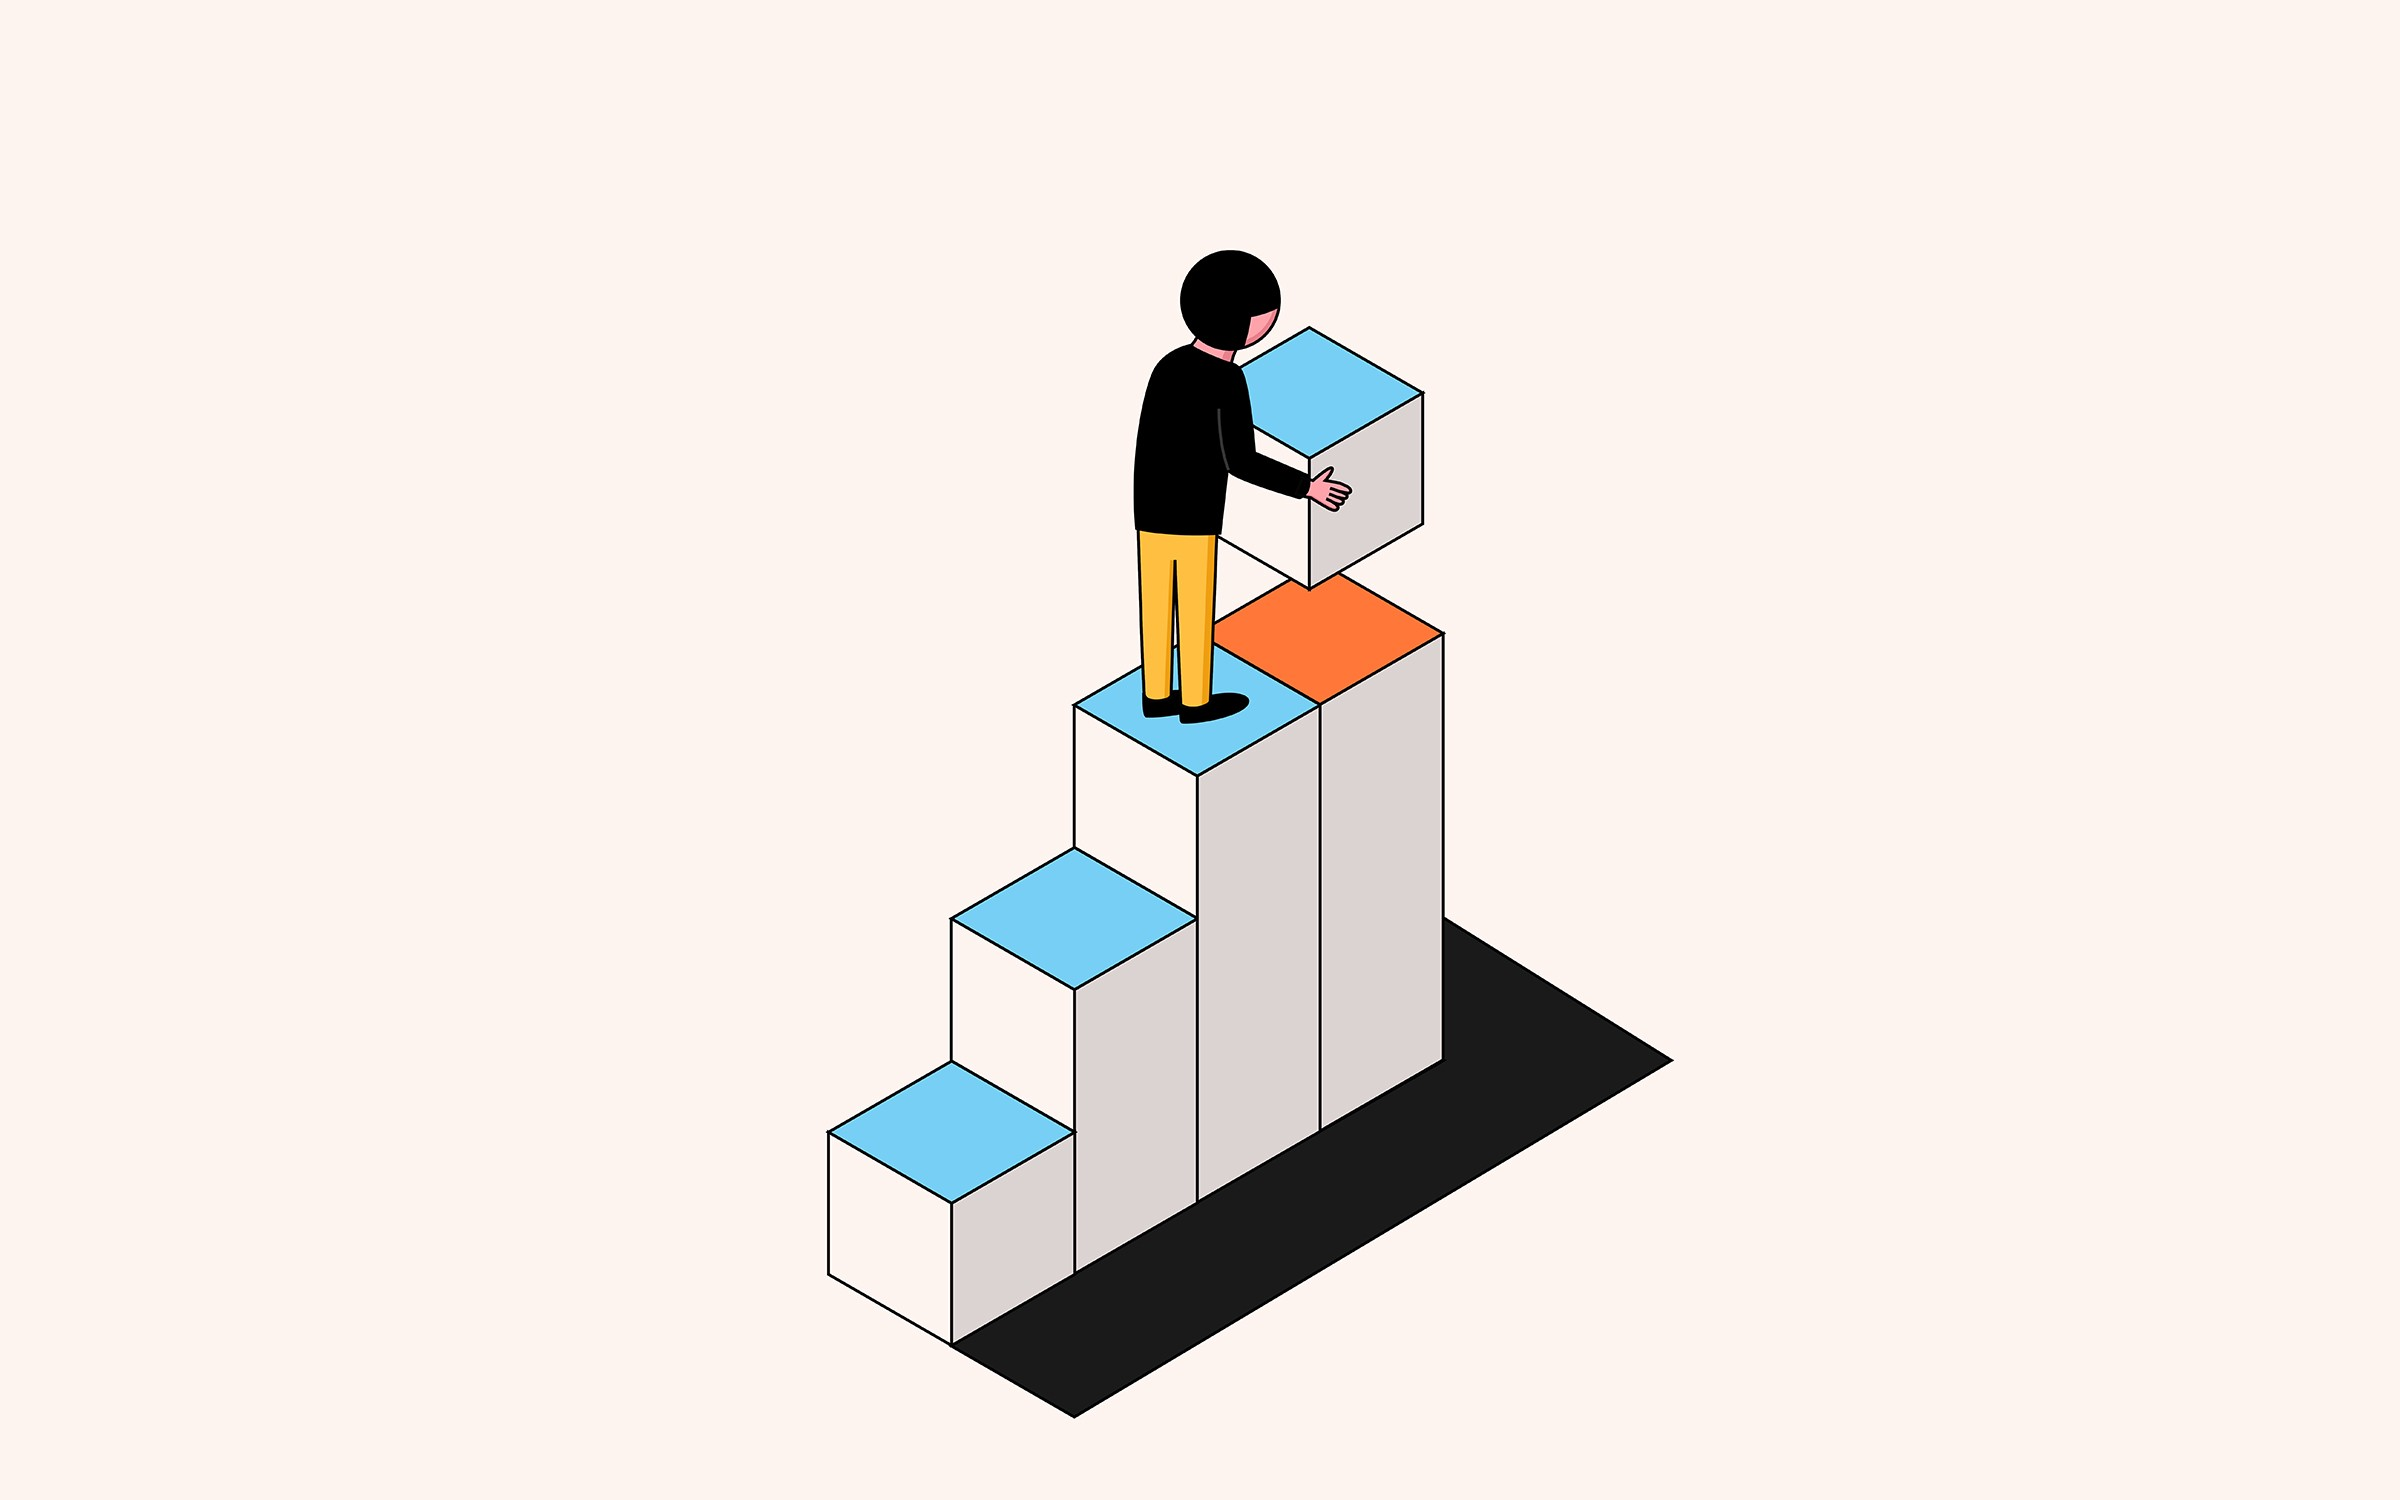 An illustration of a person walking up building blocks and holding the block for the next step.